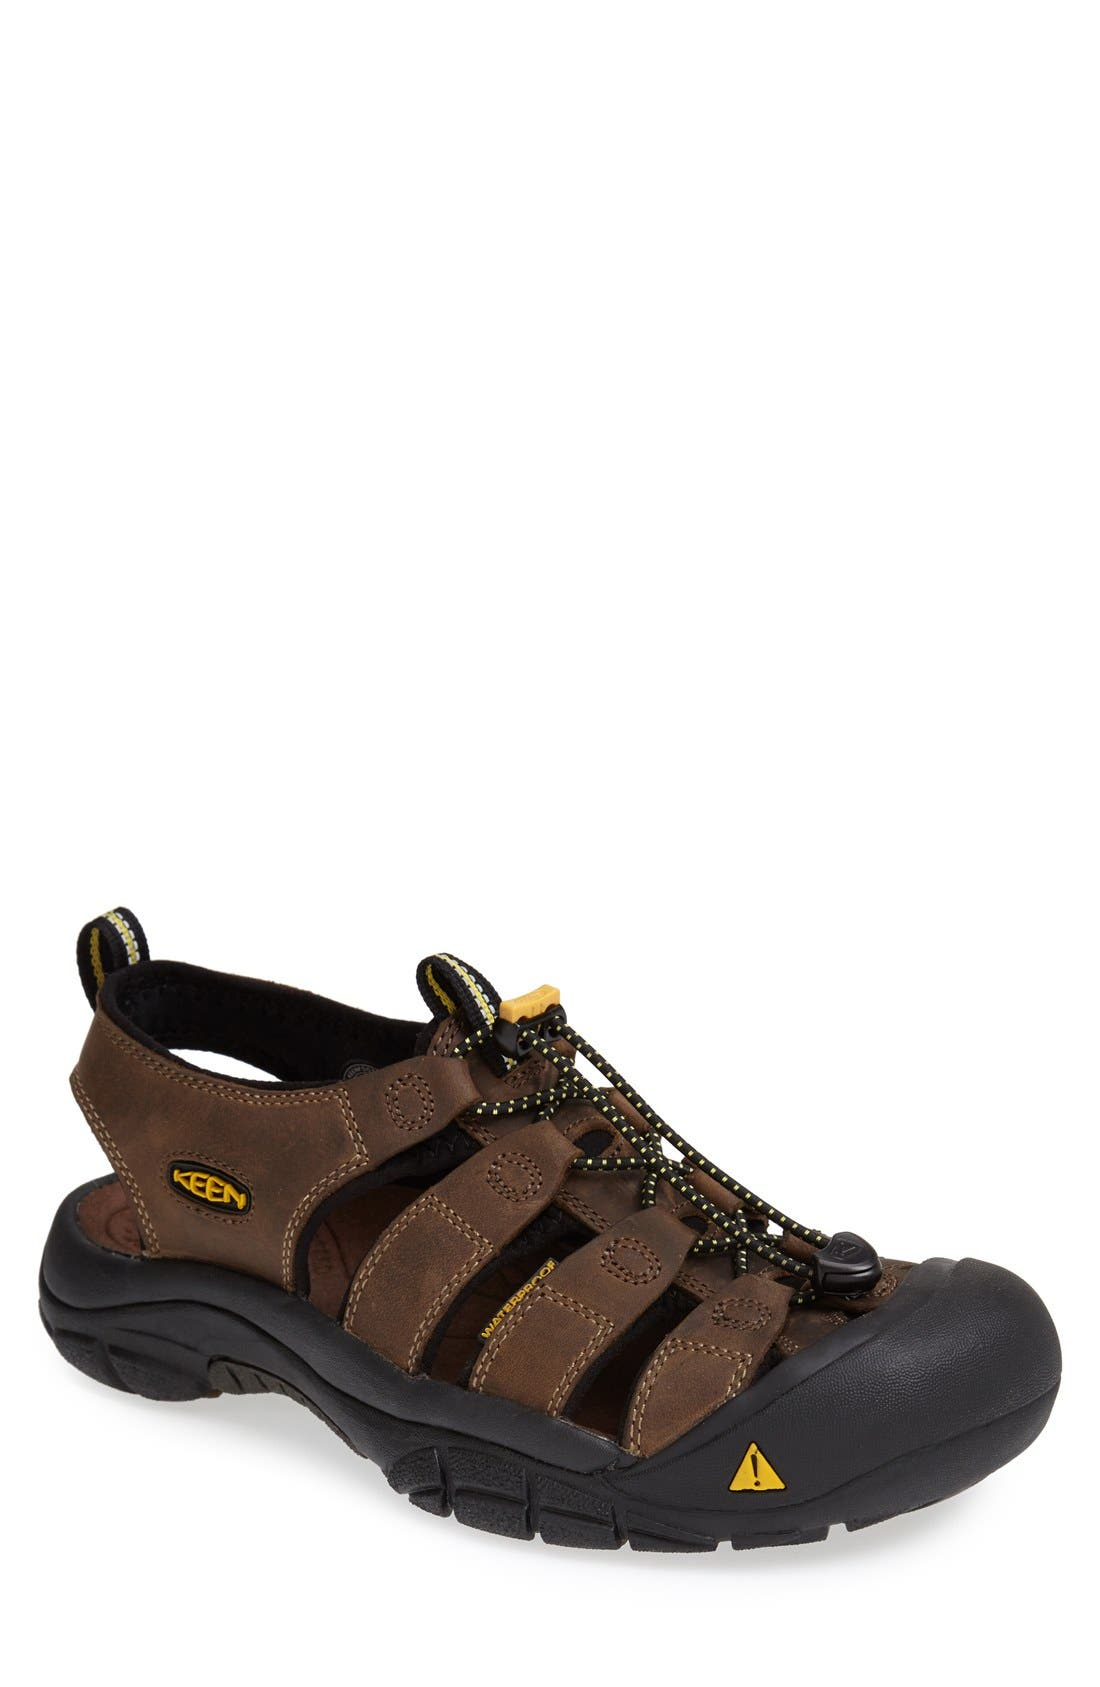 Alternate Image 1 Selected - Keen 'Newport' Sandal (Men)